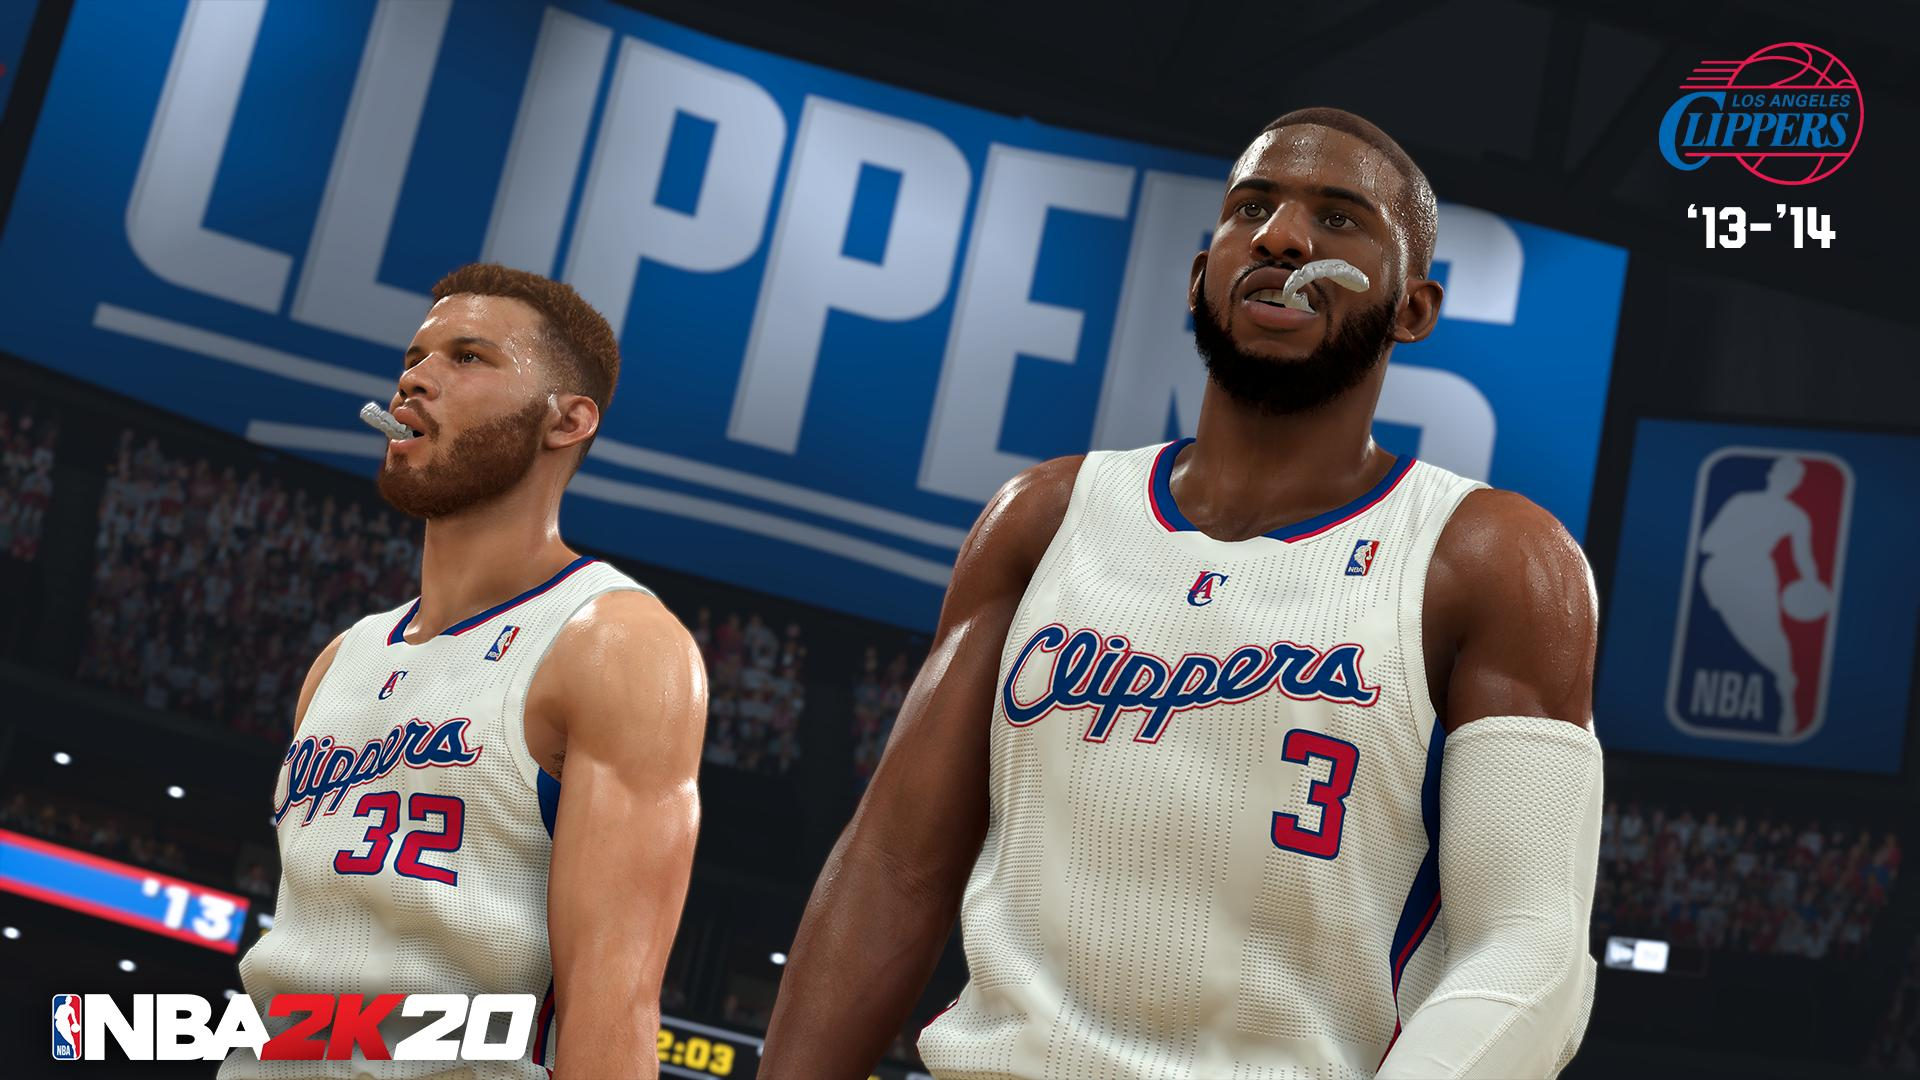 Nba 2k20 How To Alley Oop Tips And Tricks